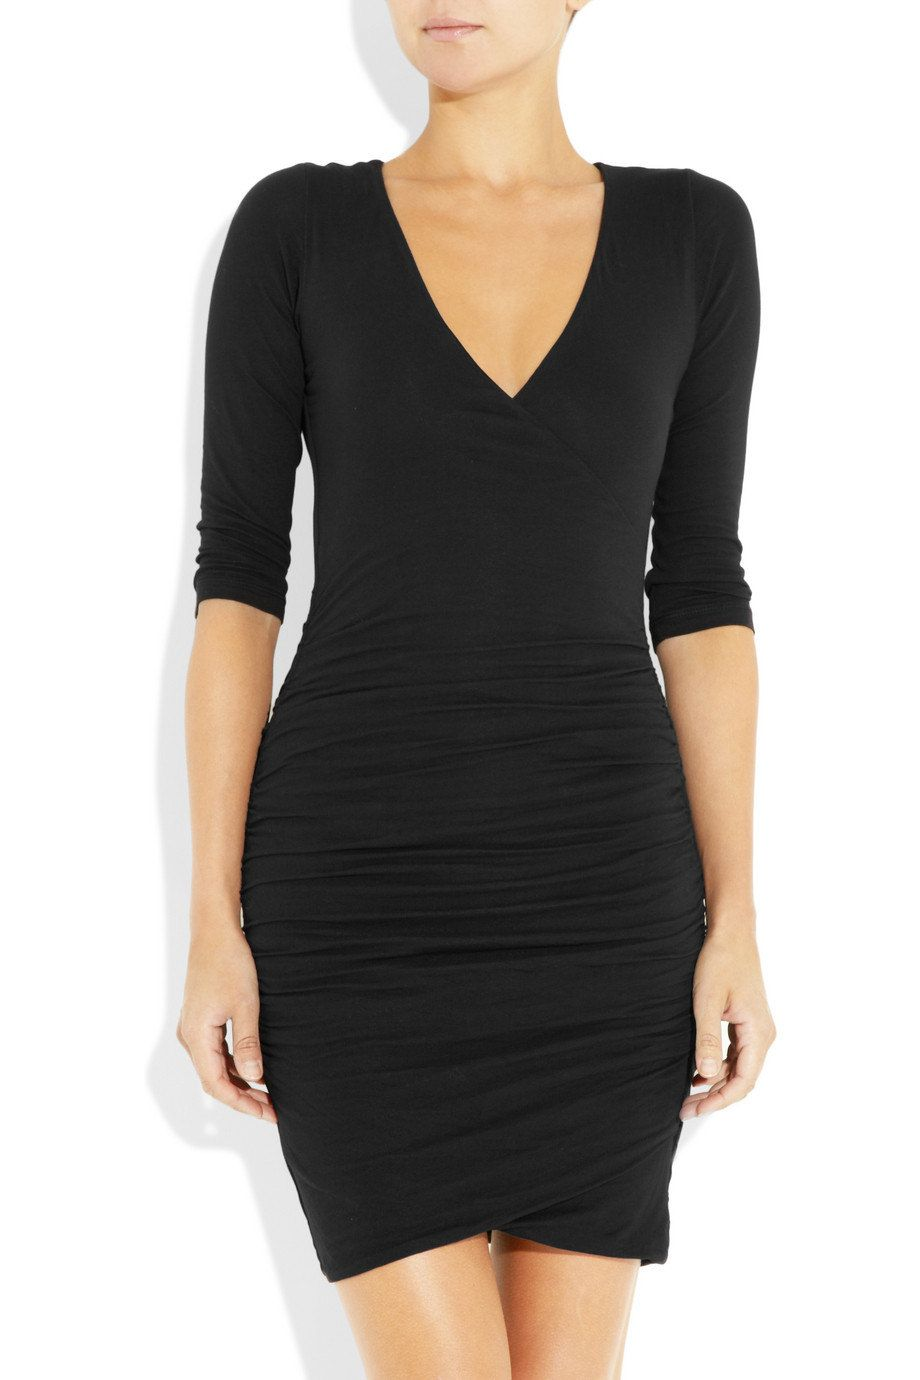 Stretch black wrap dressthree quarterlong sleeves shirred jersey